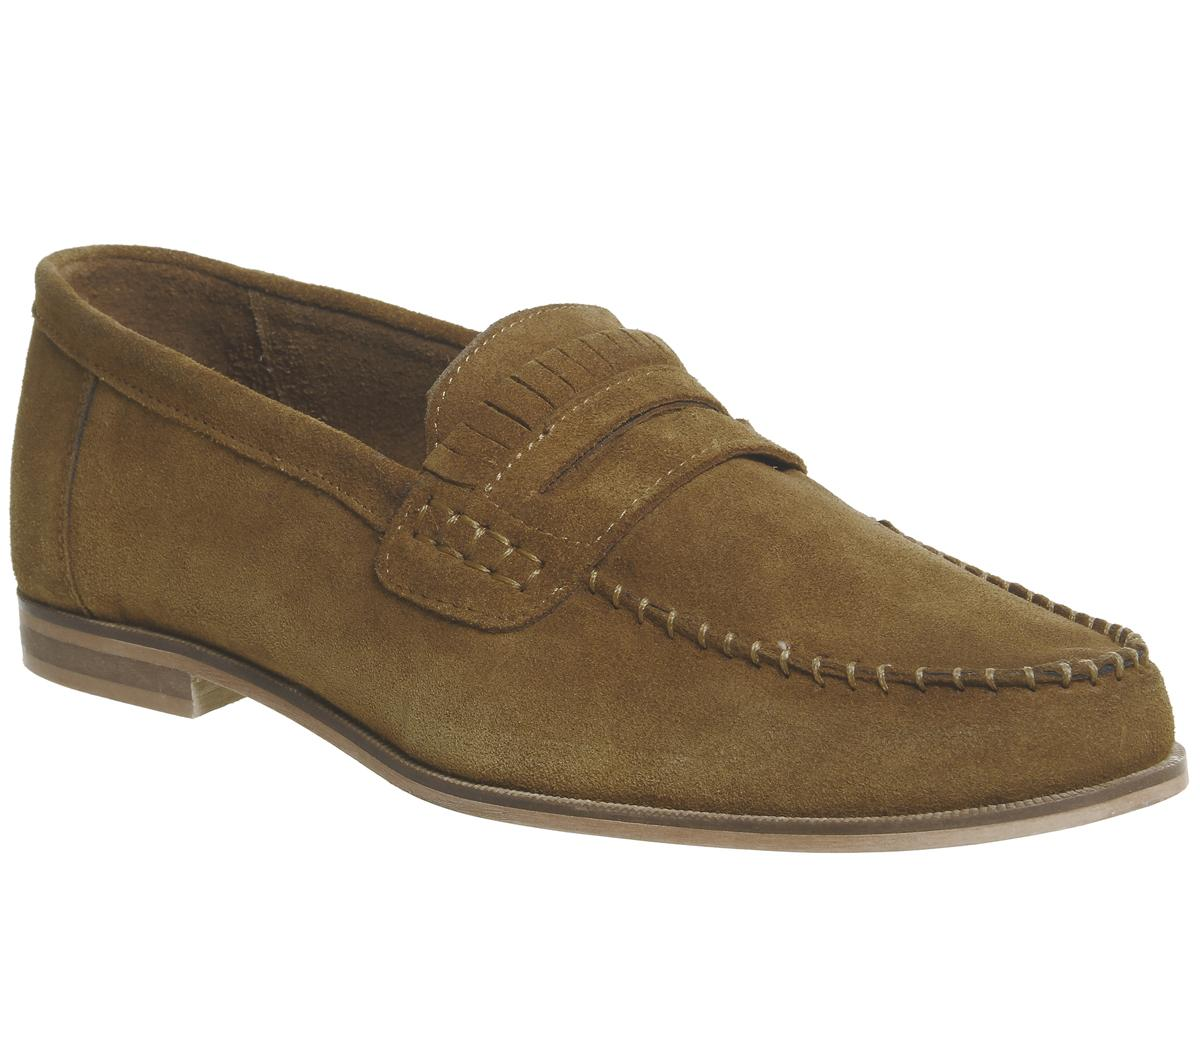 Fulham Penny Loafers